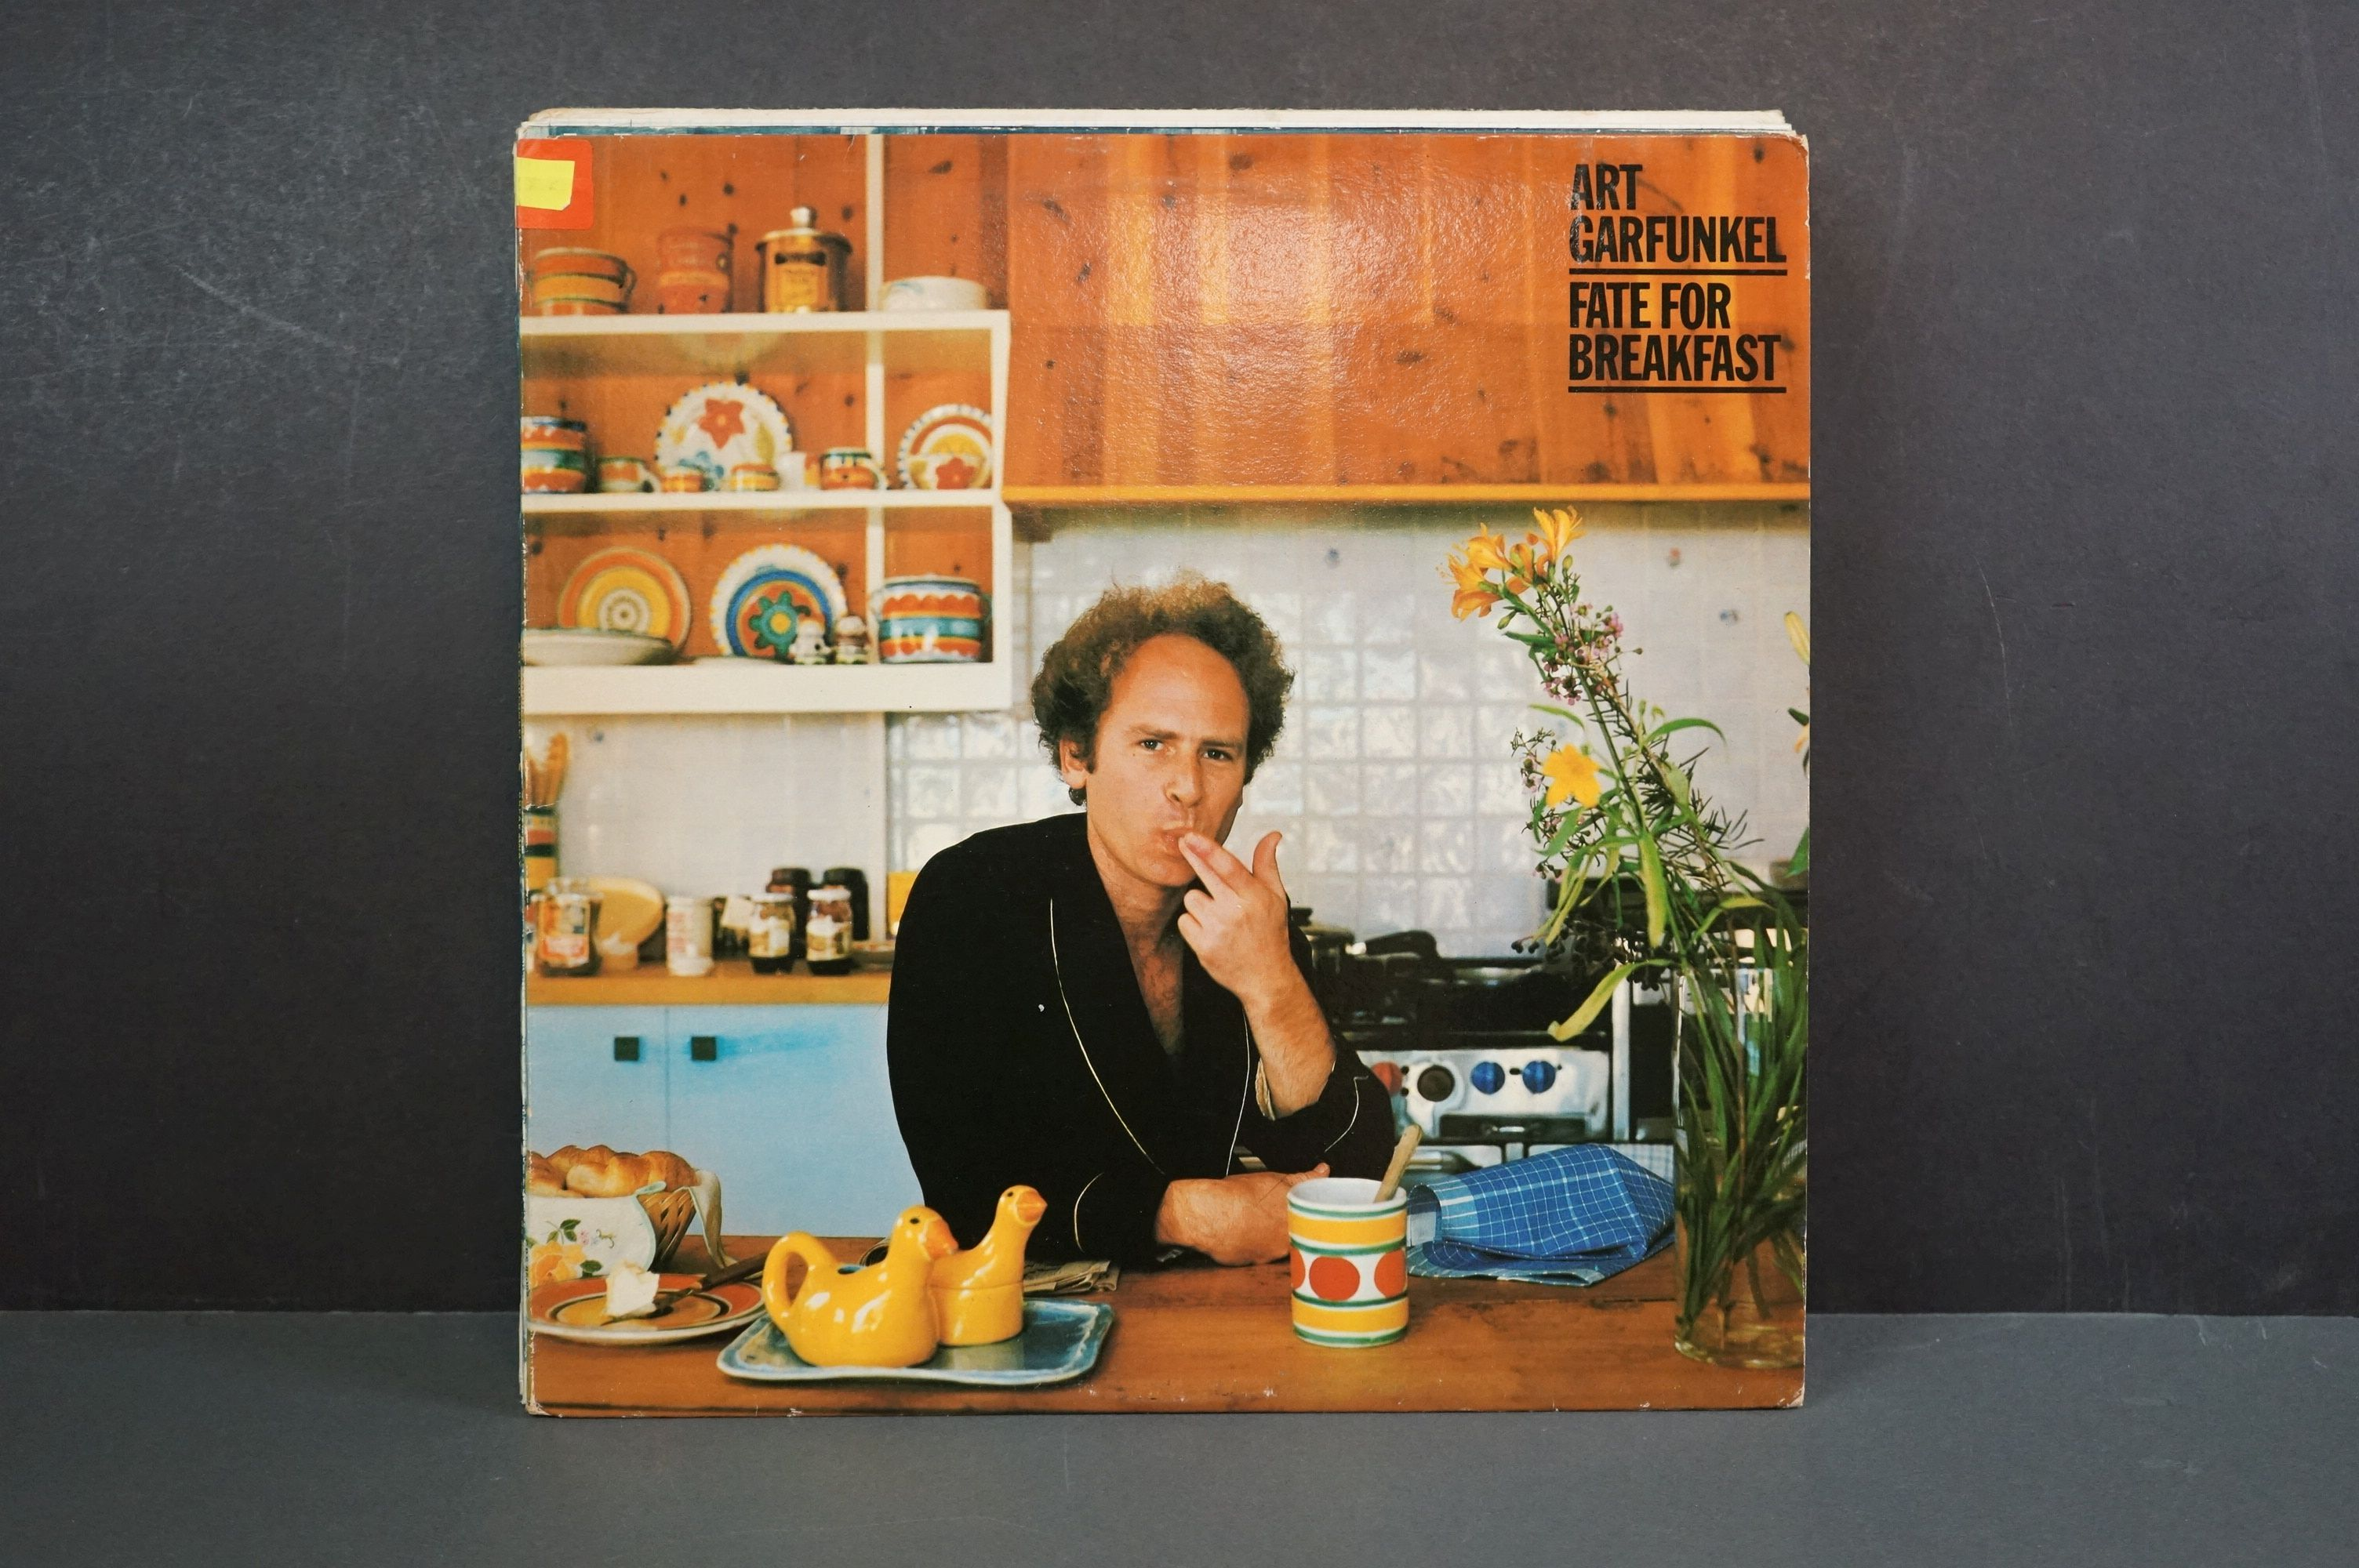 Vinyl - Around 15 Simon & Garfunkel and solo LPs to include Still Crazy After All These Years, - Image 7 of 17